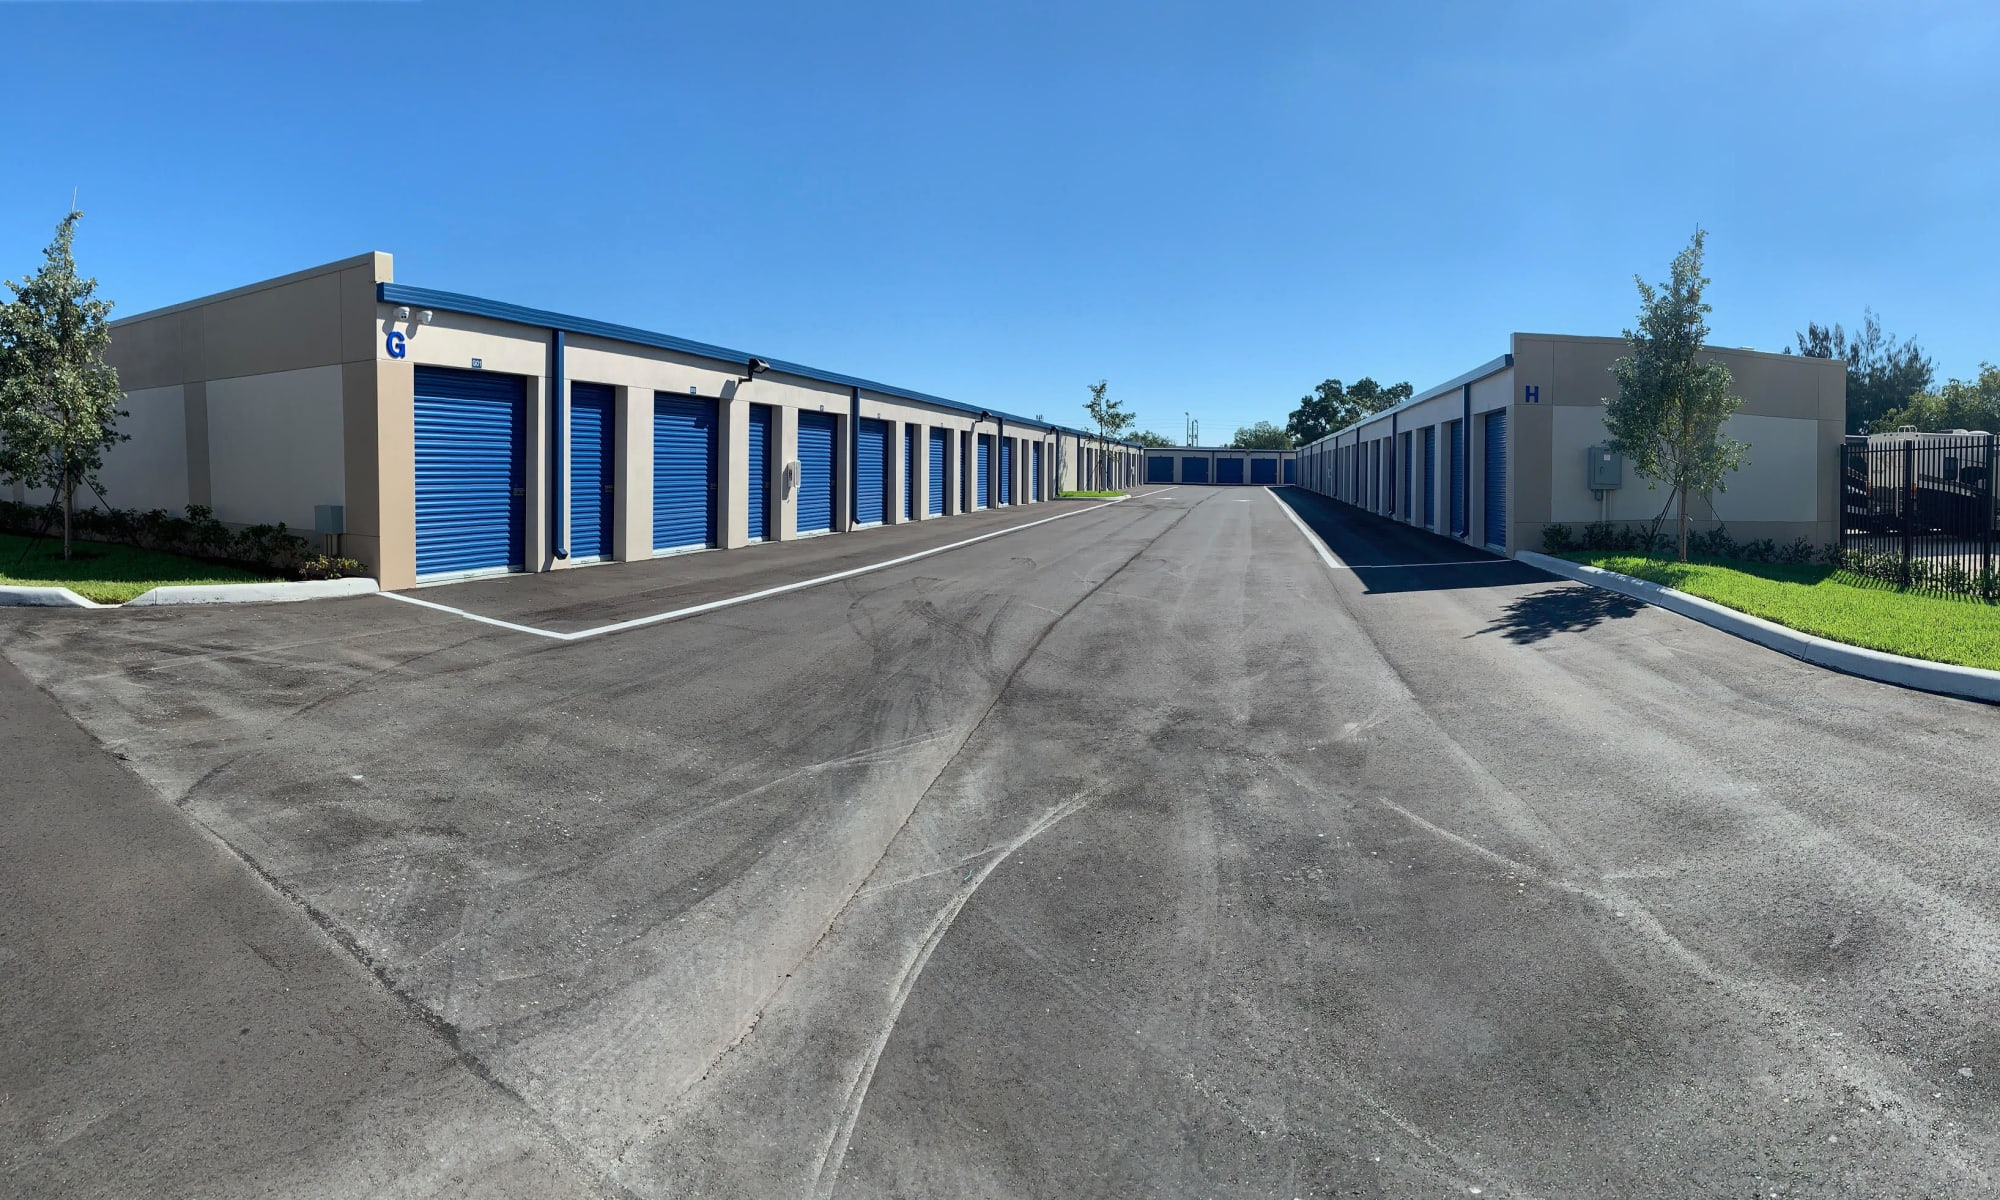 Drive up units at Pompano Beach, Florida near Top Self Storage